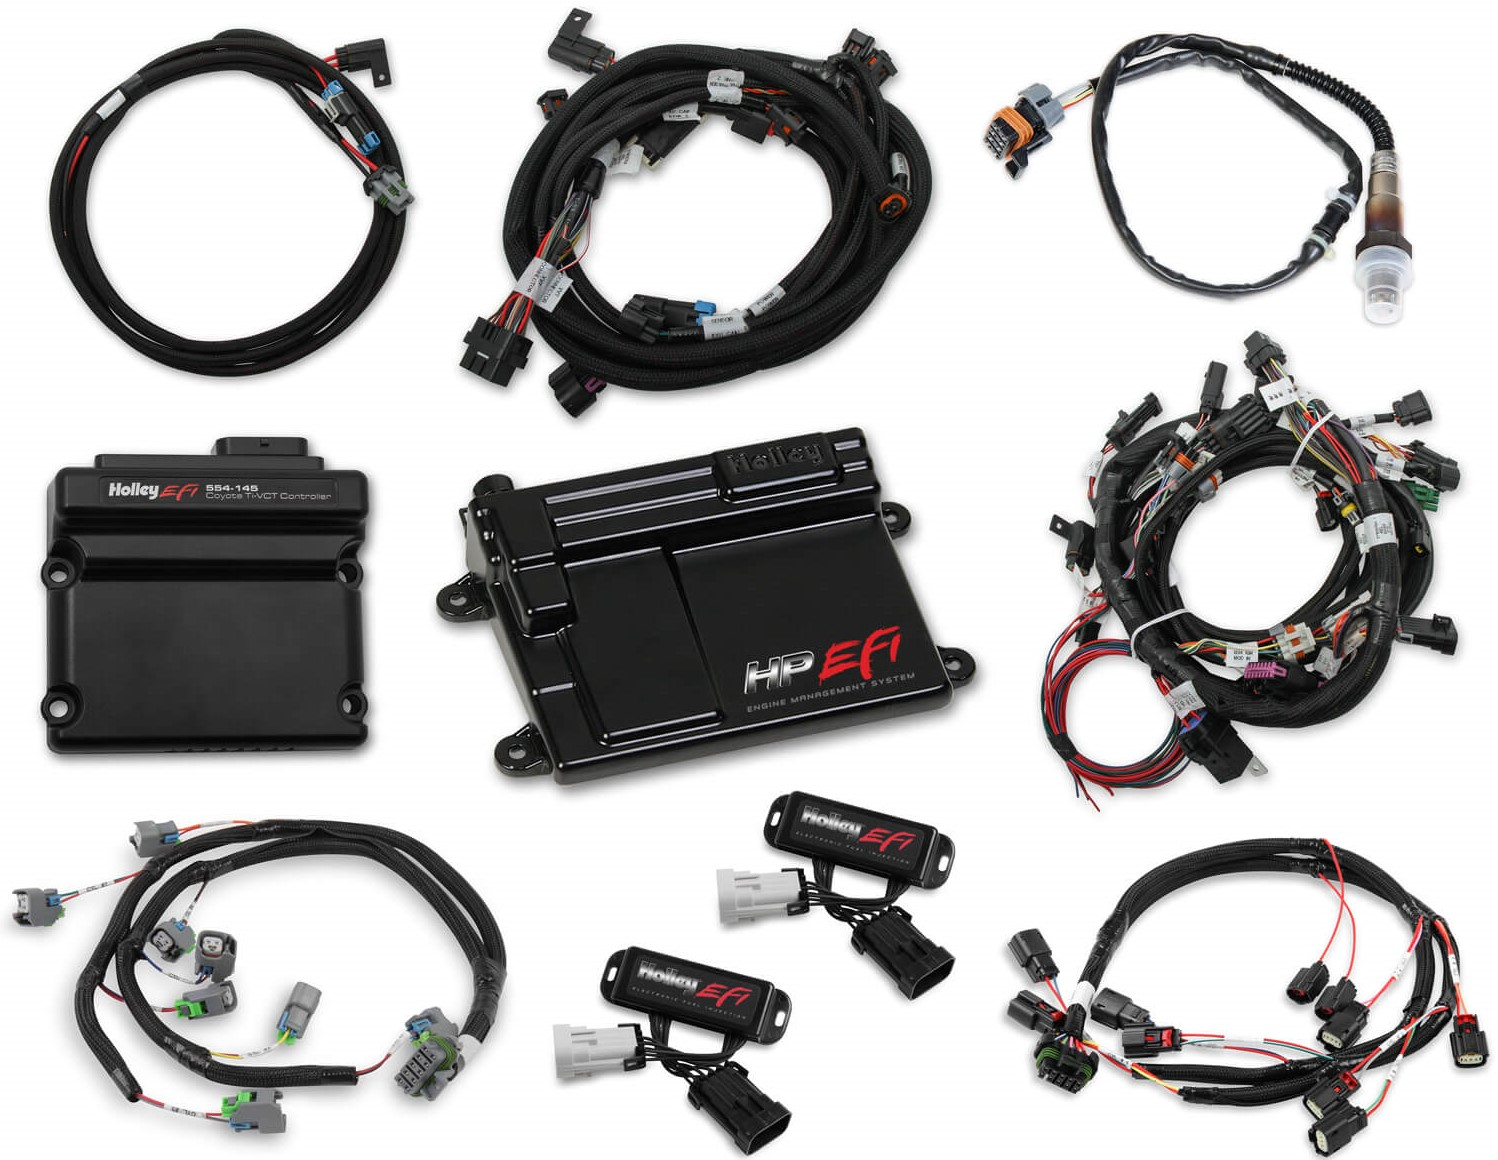 Independent Twin Cam Timing Control For Coyotes Is Now Available From Holley EFI